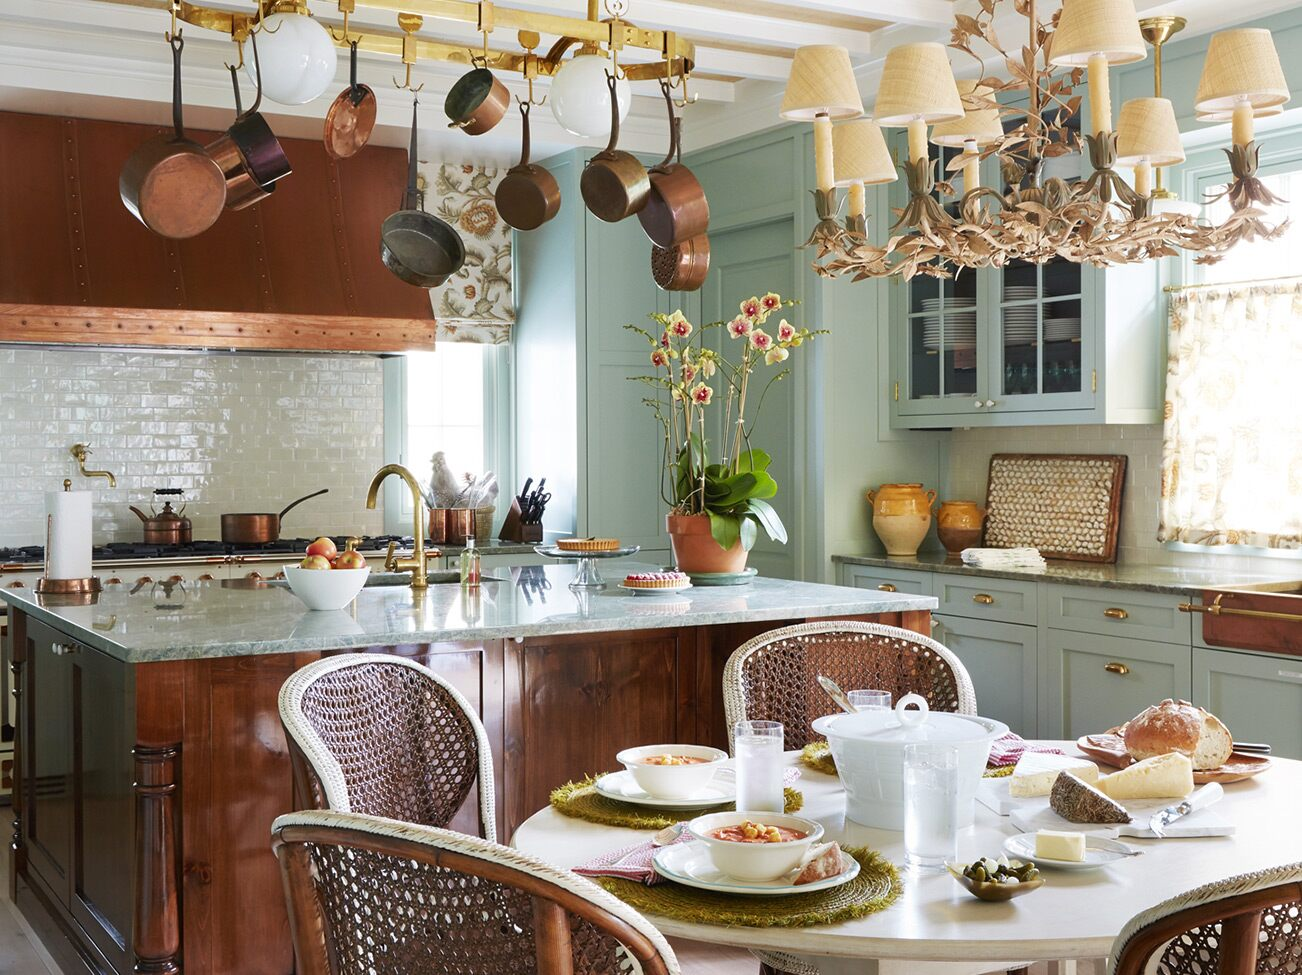 Beamed ceiling kitchen with copper range hood, large wood base island, and elegant small table with French bistro chairs.